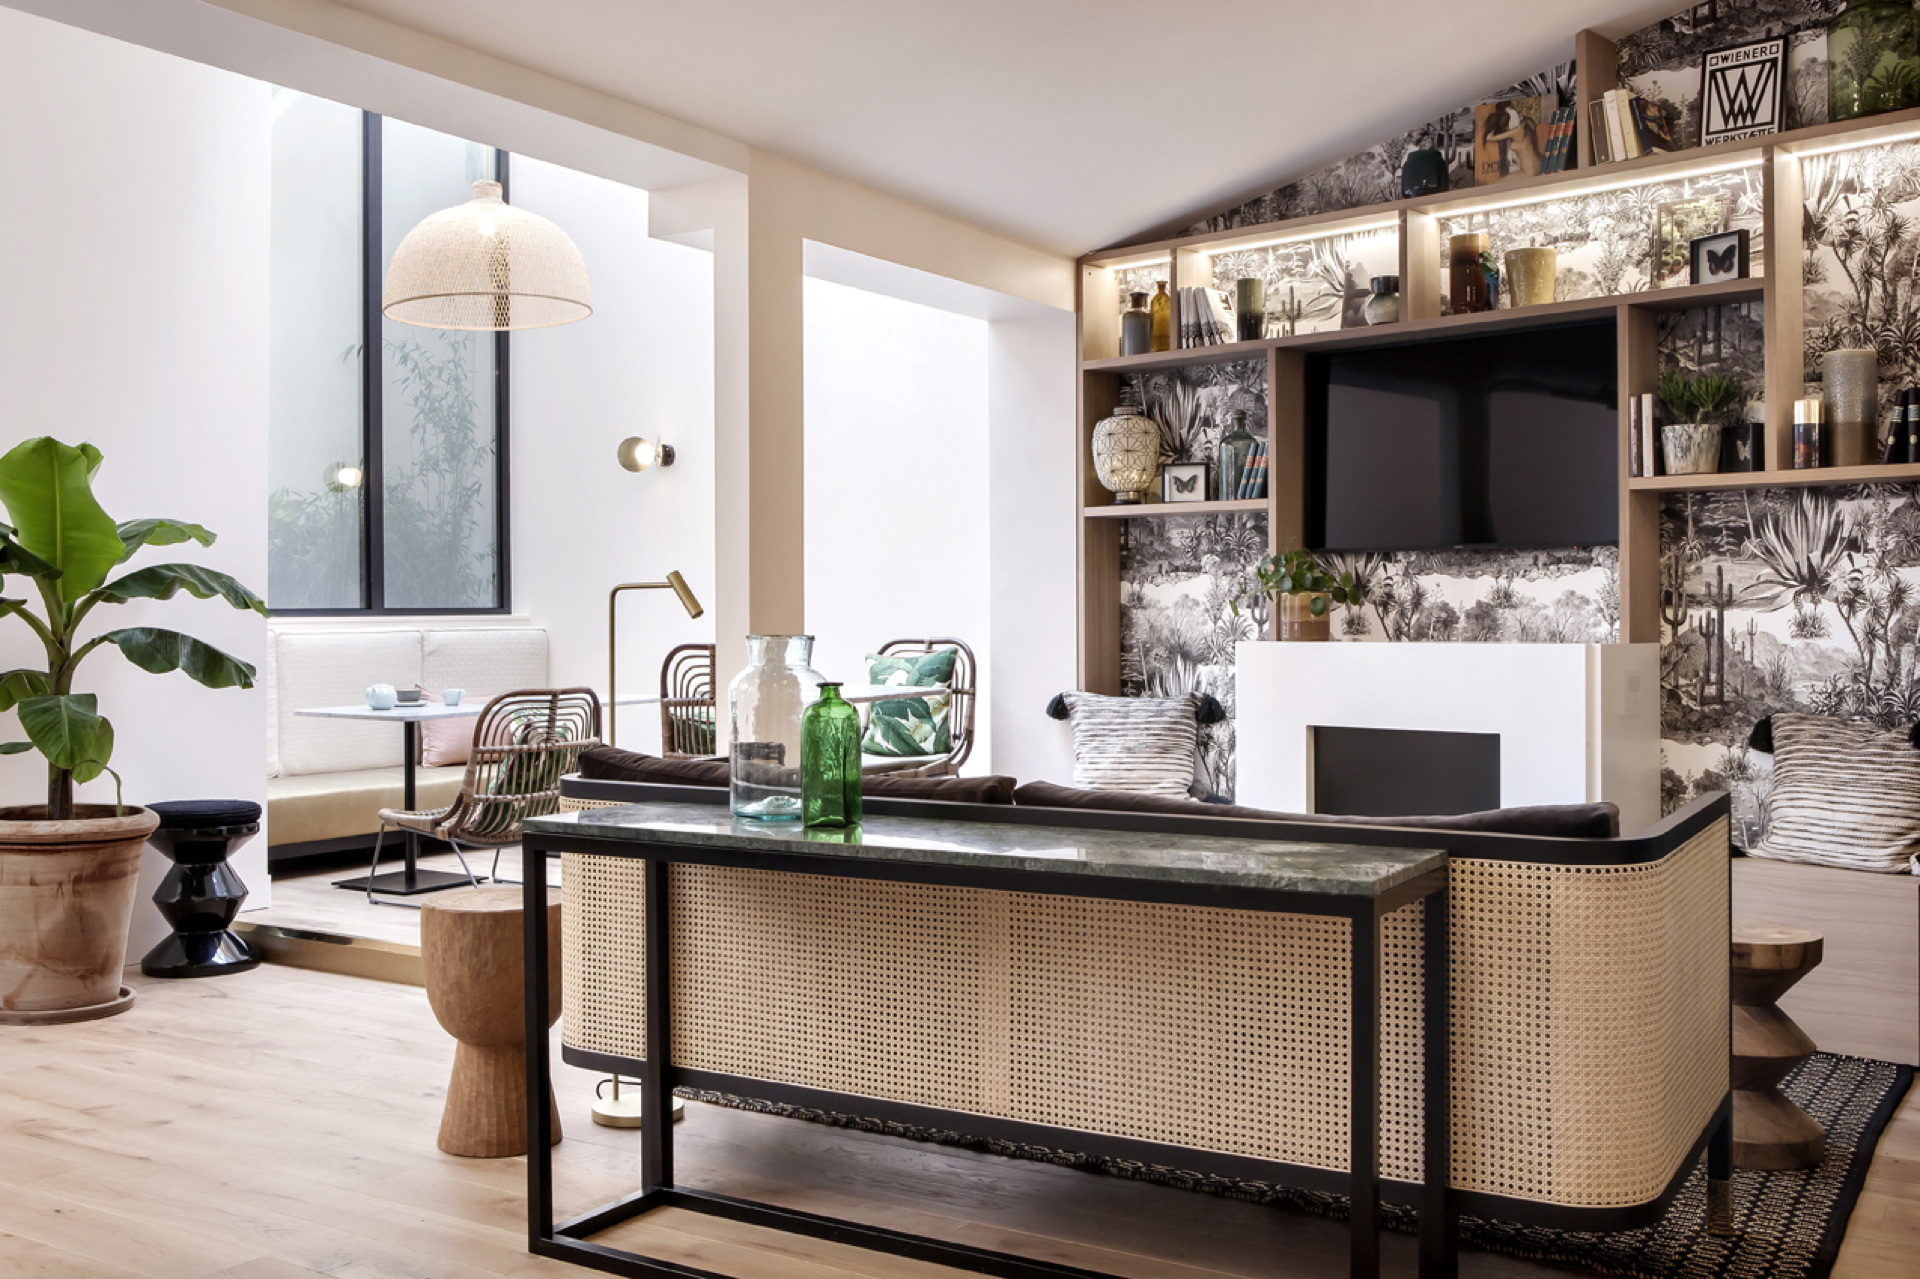 Hotel Doisy in Paris with interiors by BR Design Interieur ...